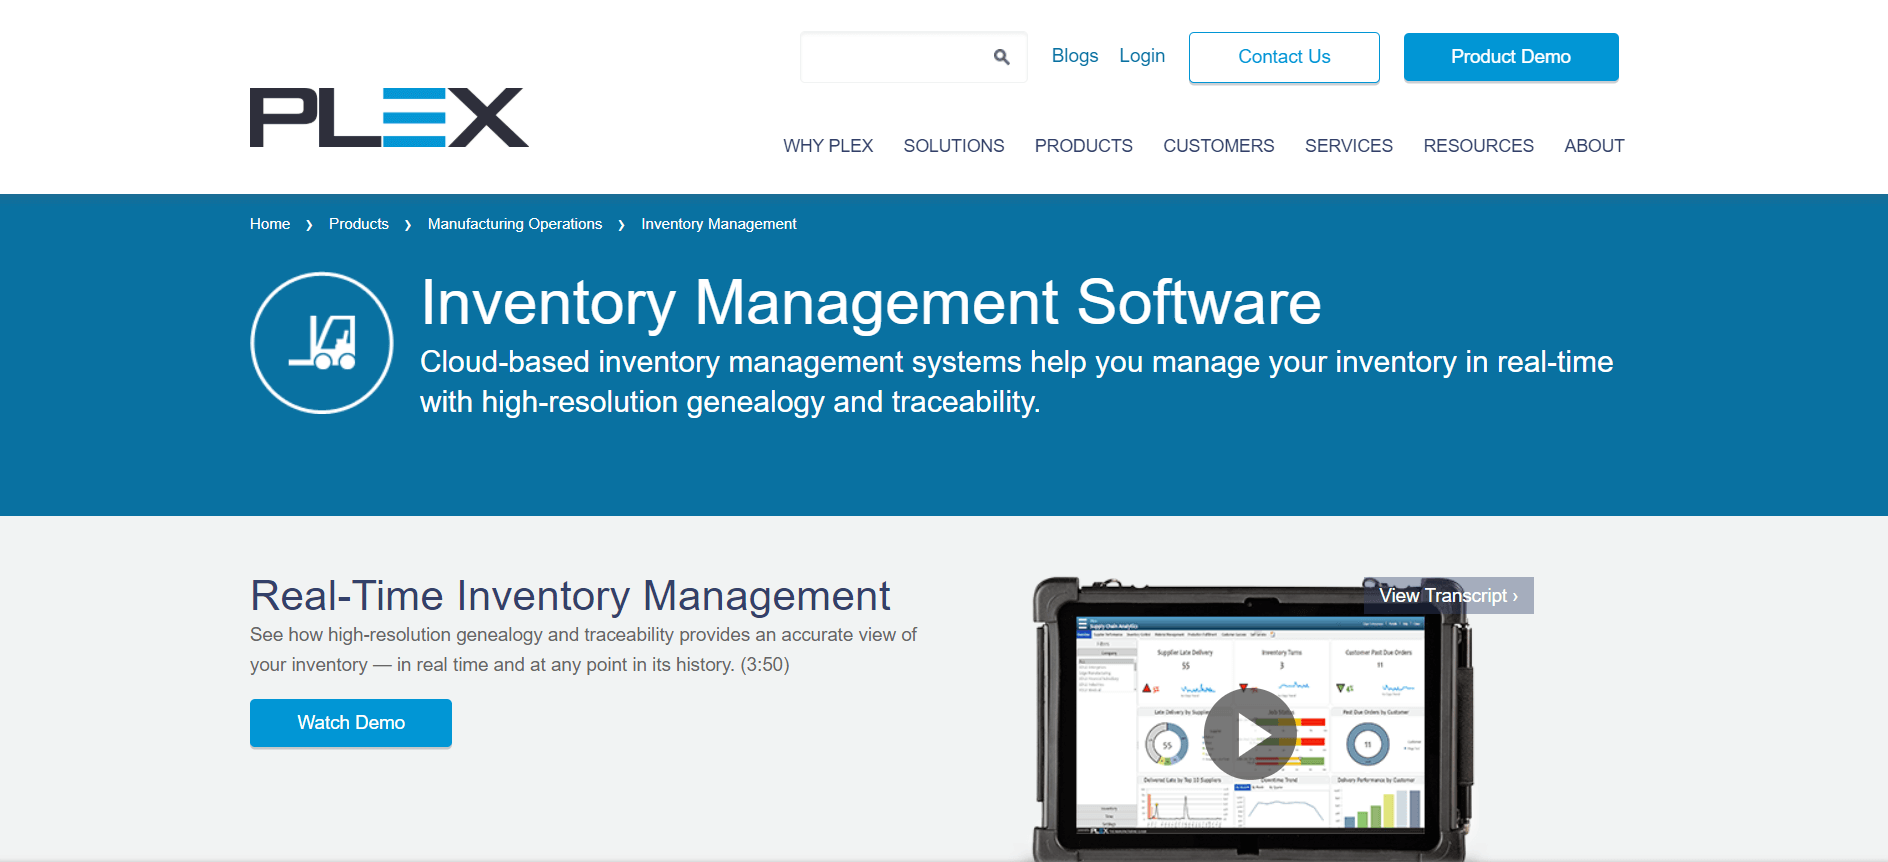 plex inventory management software